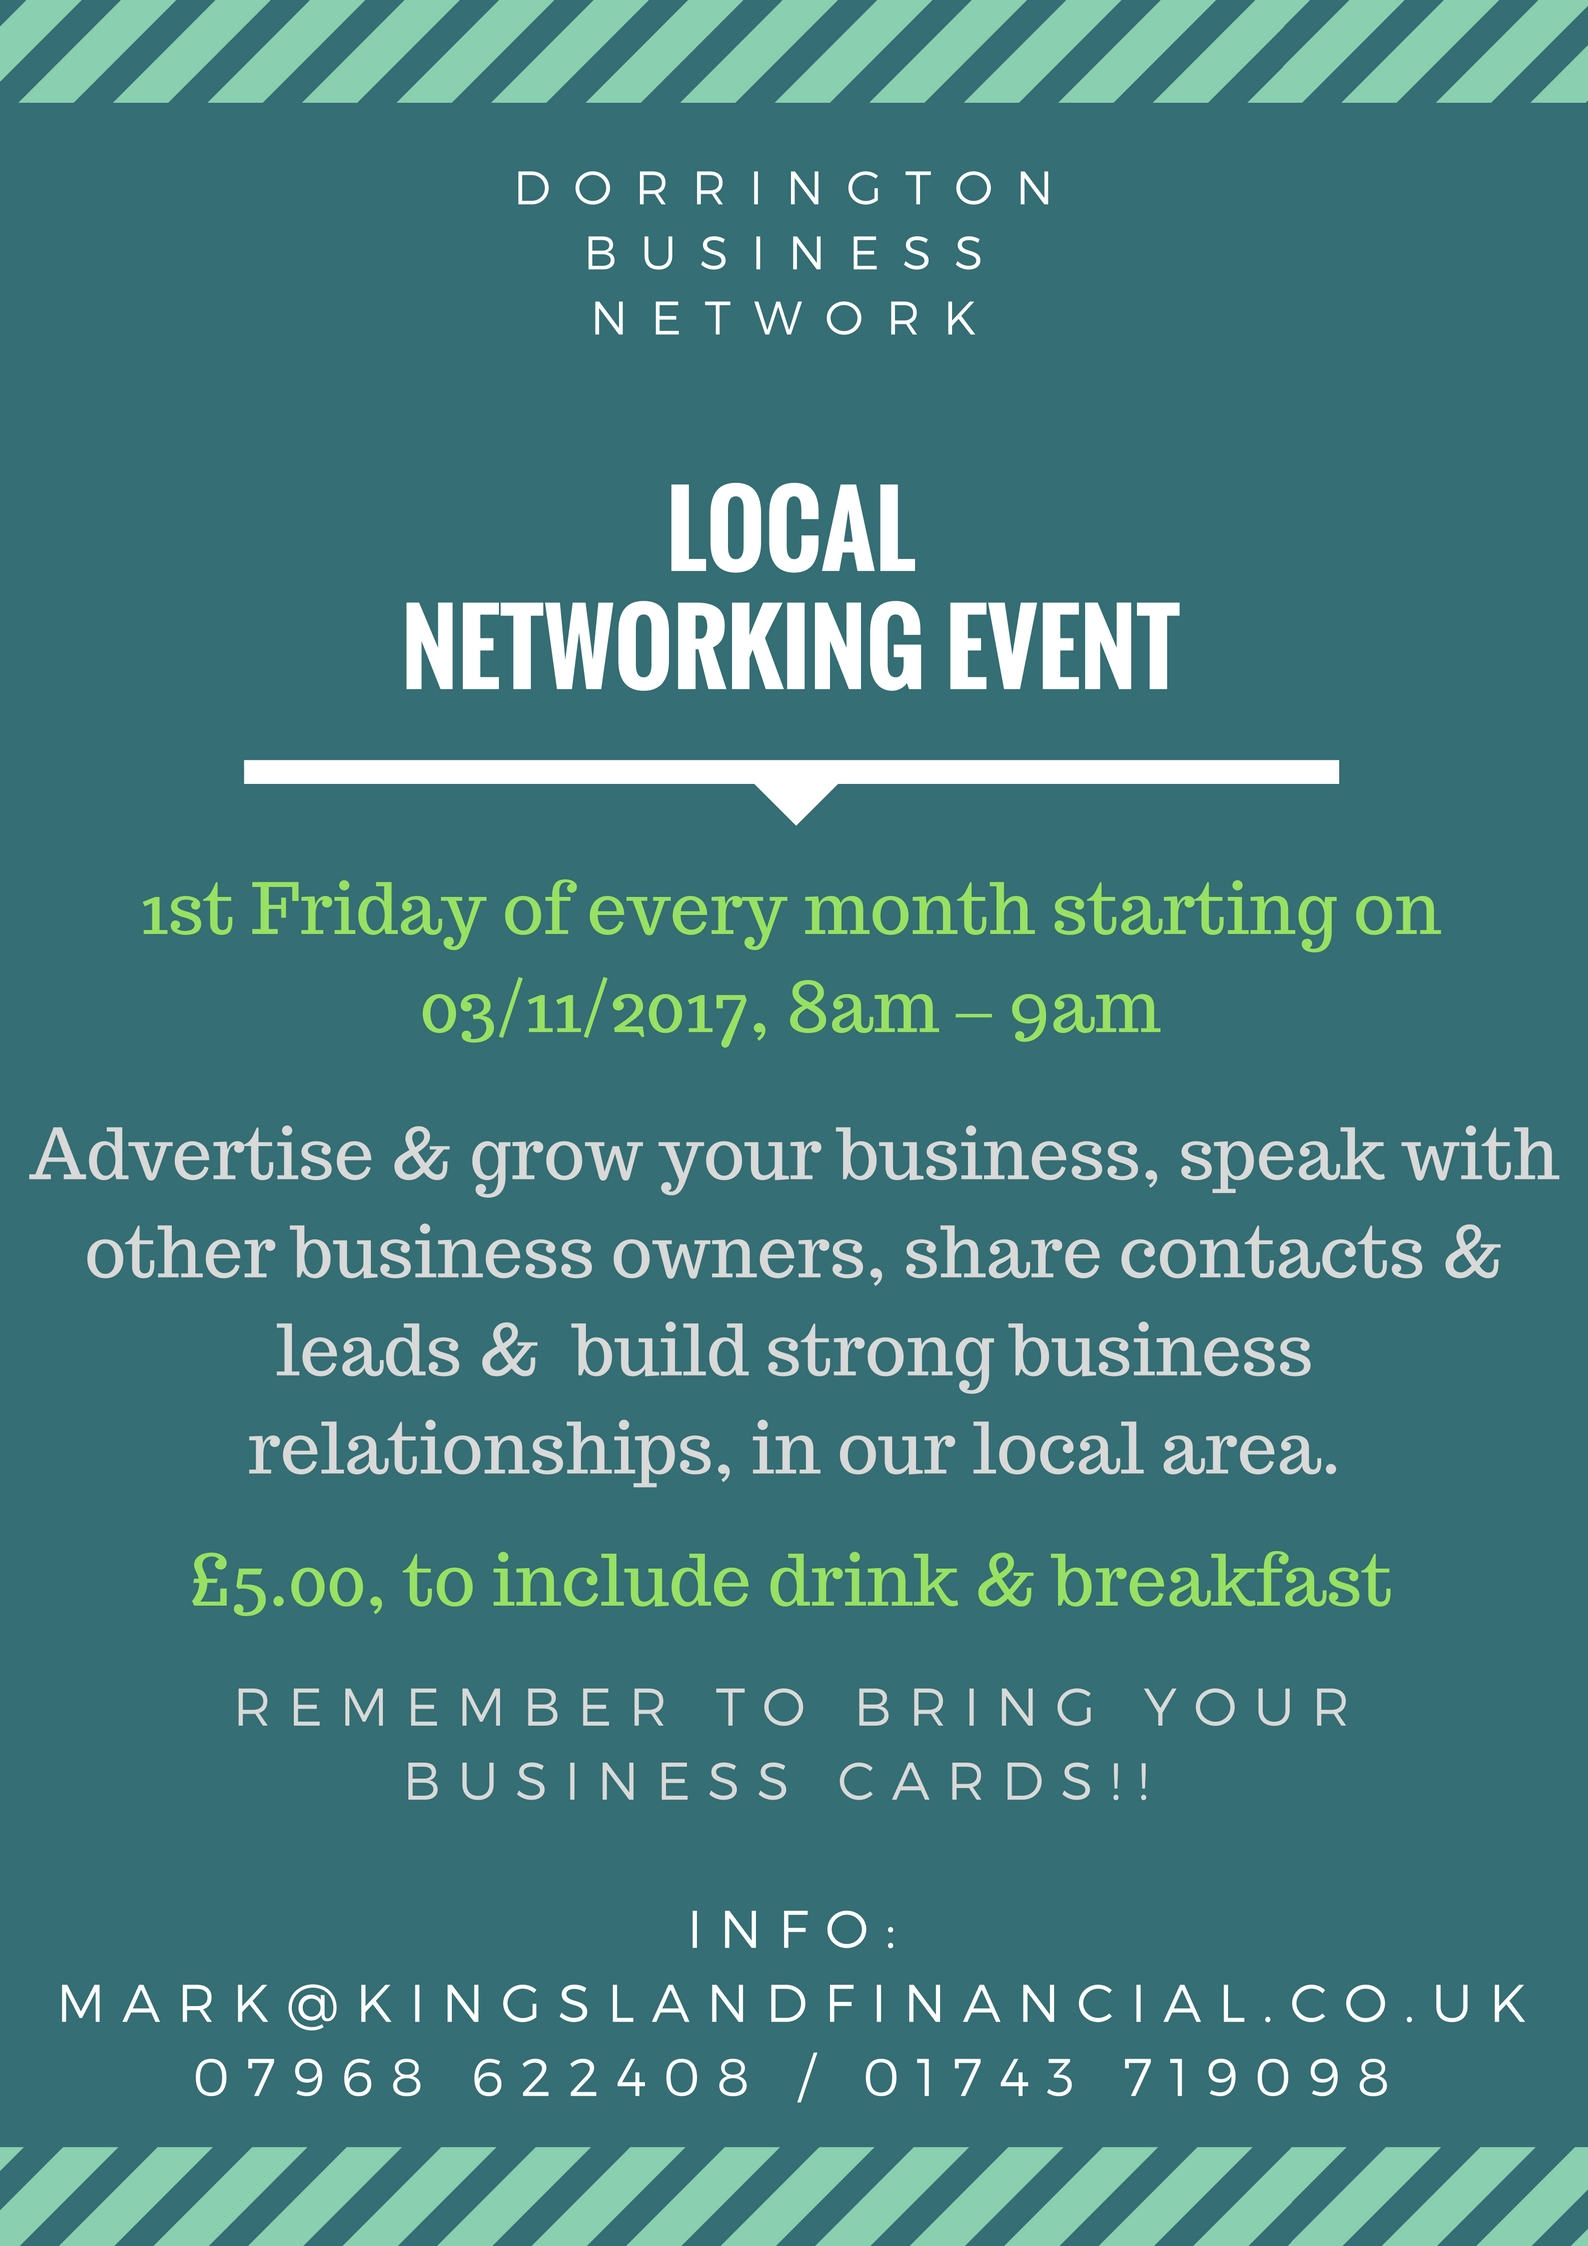 Dorrington Business Network